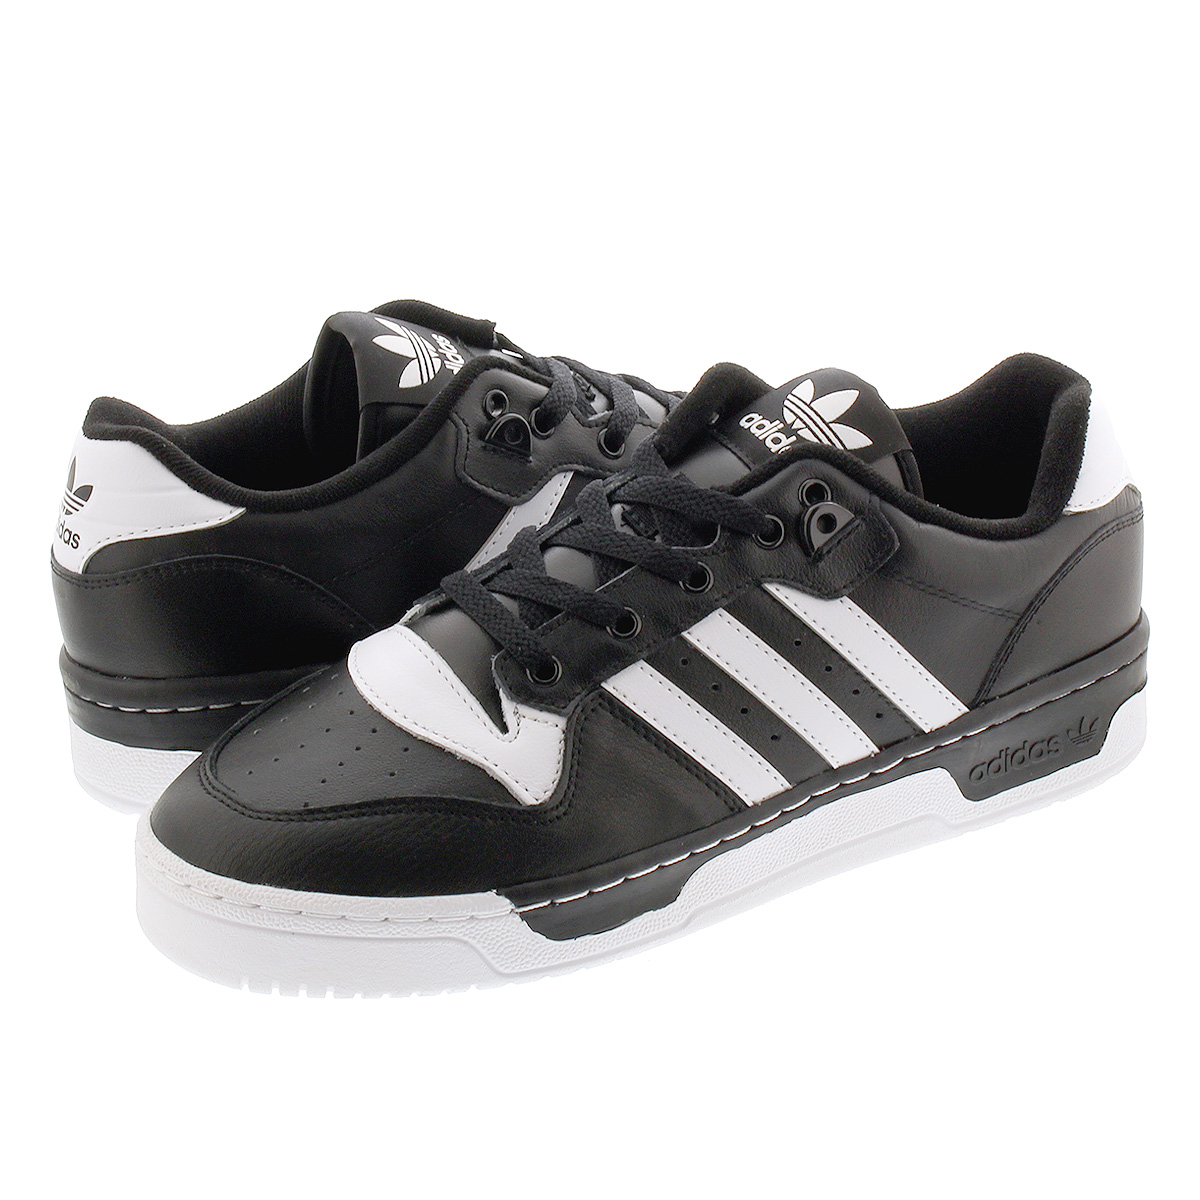 adidas RIVALRY LOW アディダス リバルリー ロー CORE BLACK/FTWR WHITE/FTWR WHITE eg8063